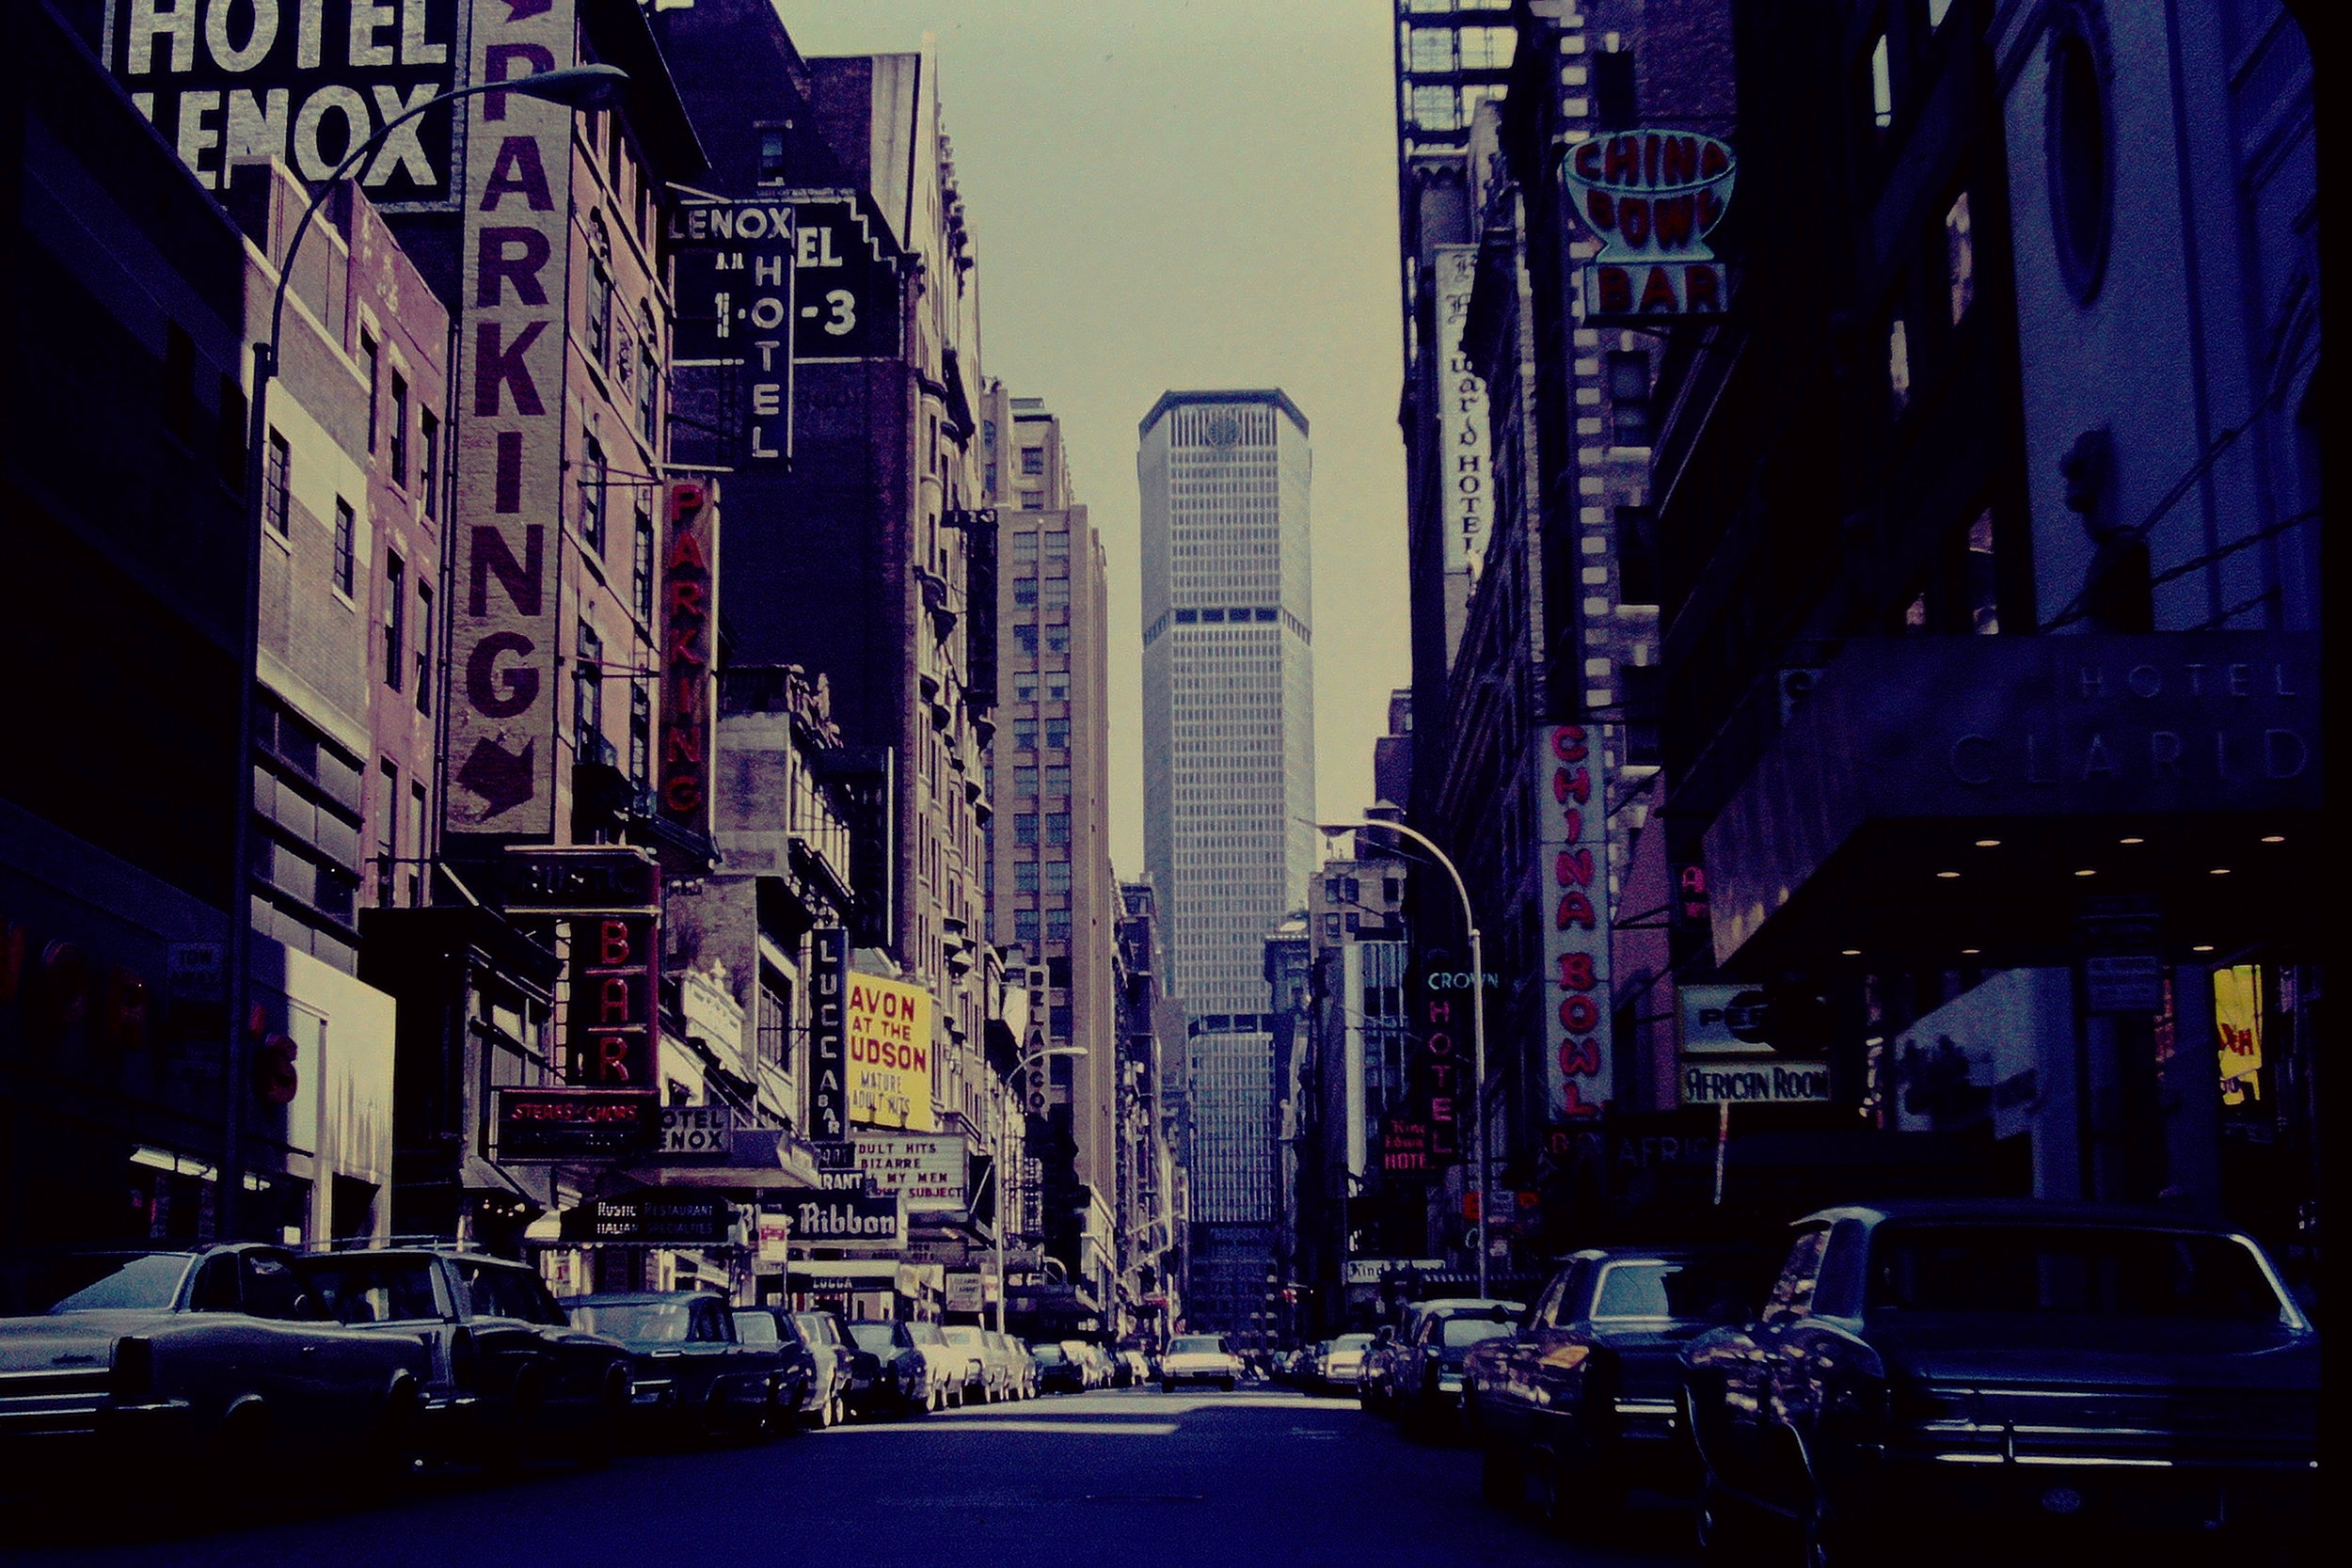 One of my dad's slides from NYC